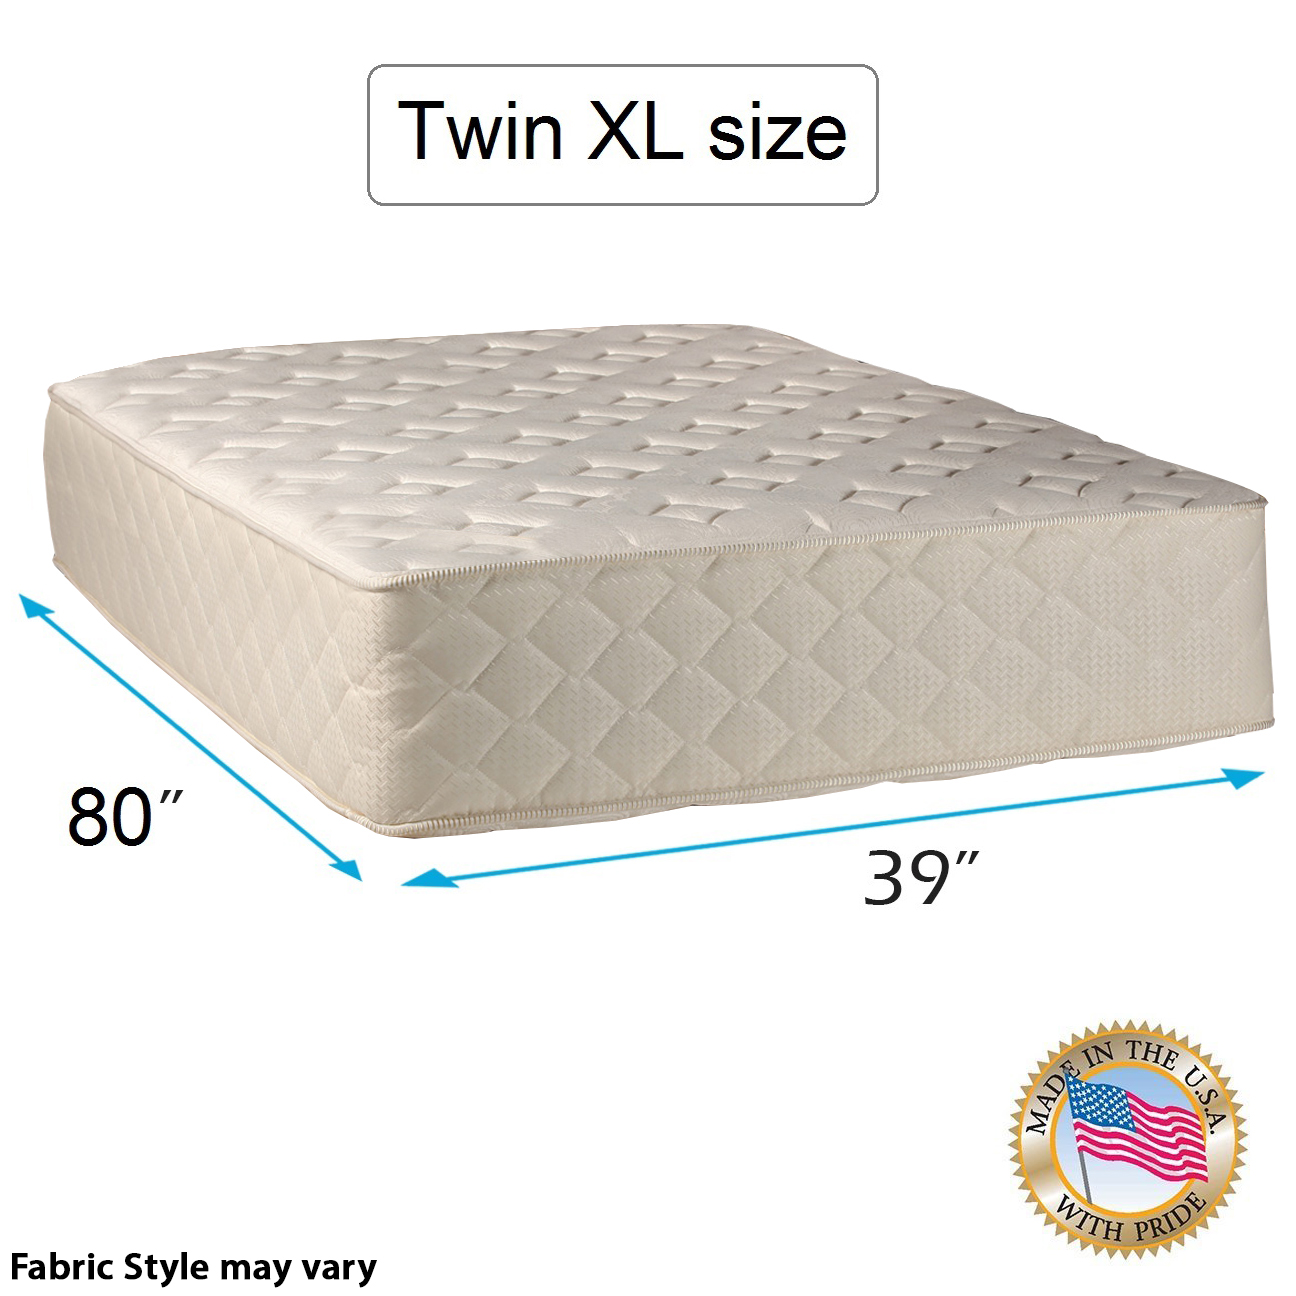 "Highlight Luxury Gentle Firm Twin XL Size (39""x80""x14"") Mattress Only - Fully Assembled - Spinal Back Support, Innerspring Coils, Premium edge guards, Longlasting Comfort - By Dream Solutions USA"